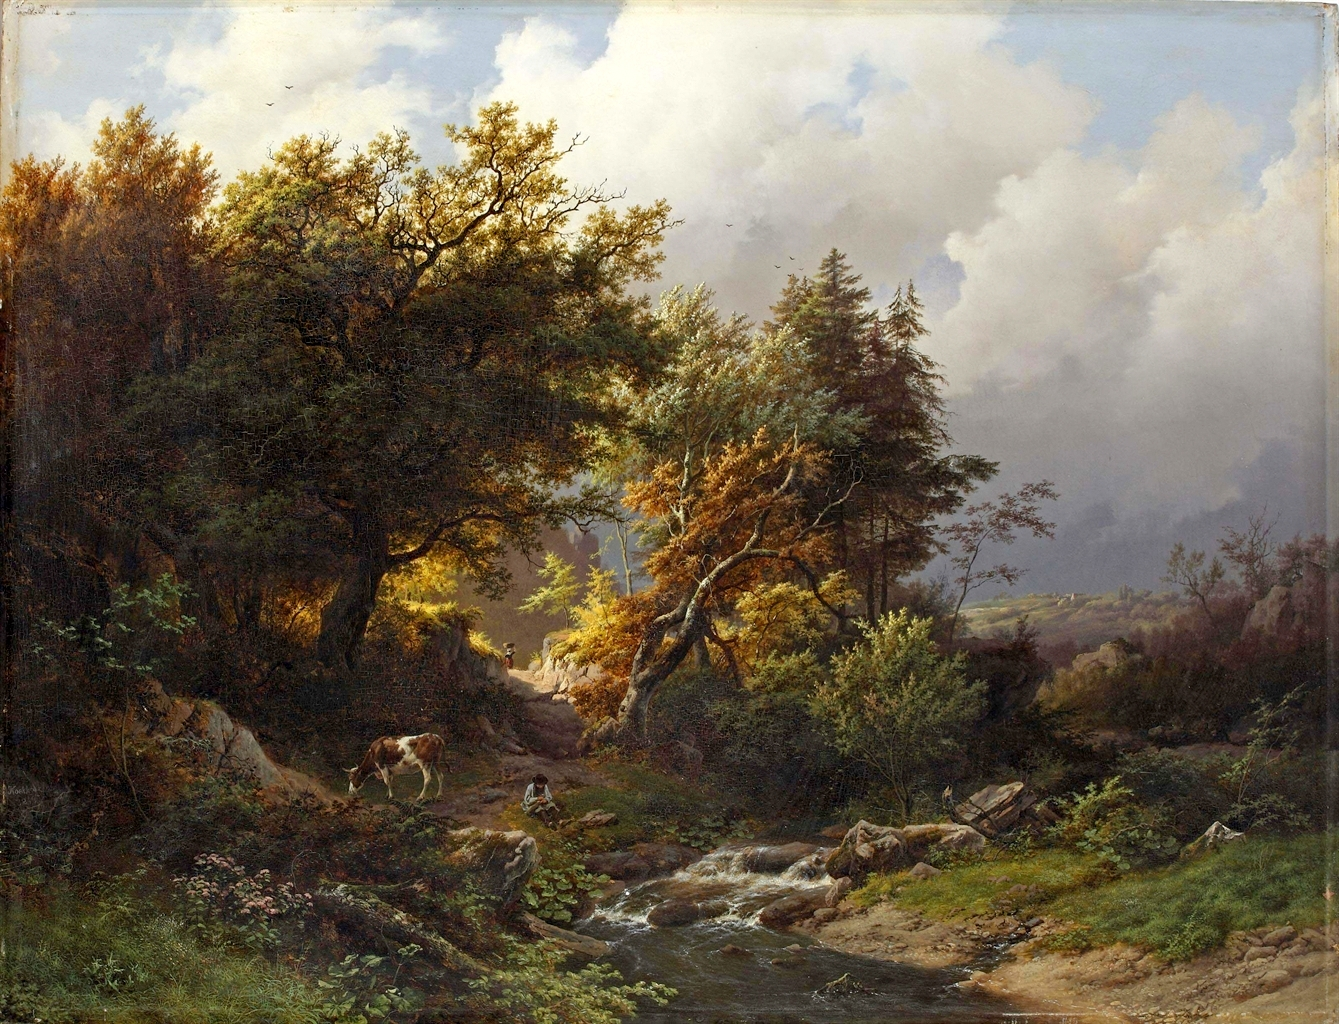 Barend Cornelis Koekkoek – private collection. Title: A Sunlit Forest After a Storm. Date: 1848. Materials: oil on panel. Dimensions: 73.5 x 95 cm.  Inscriptions: B.C. Koekkoek 1848 (lower left). Sold by Christie's in Amsterdam, on November 25-26, 2014.  Source: http://www.christies.com/lotfinderimages/d58479/d5847939a.jpg. I have changed the light and contrast of the original photo.